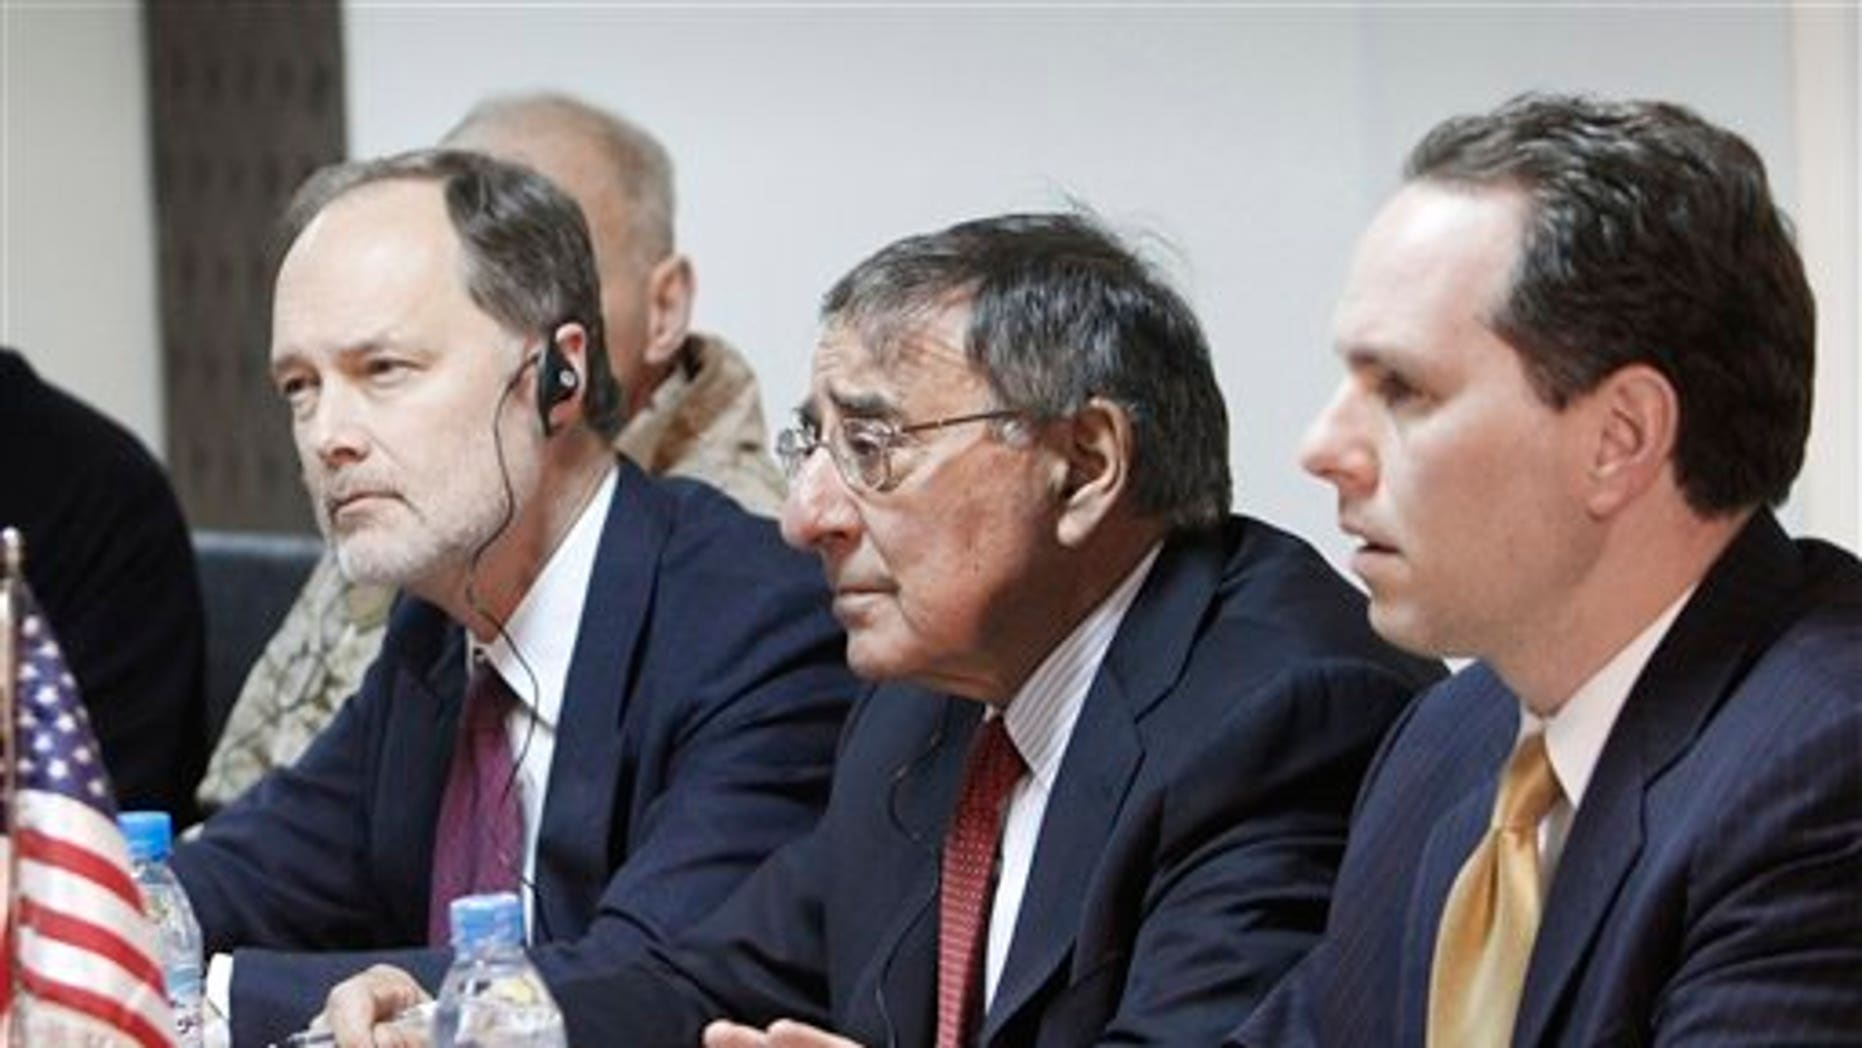 Mar. 14, 2012: U.S. Secretary of Defense Leon Panetta, center, listens to his Afghan counterpart Bismillah Mohammadi, unseen, during a  meeting at the interior ministry in Kabul, Afghanistan.